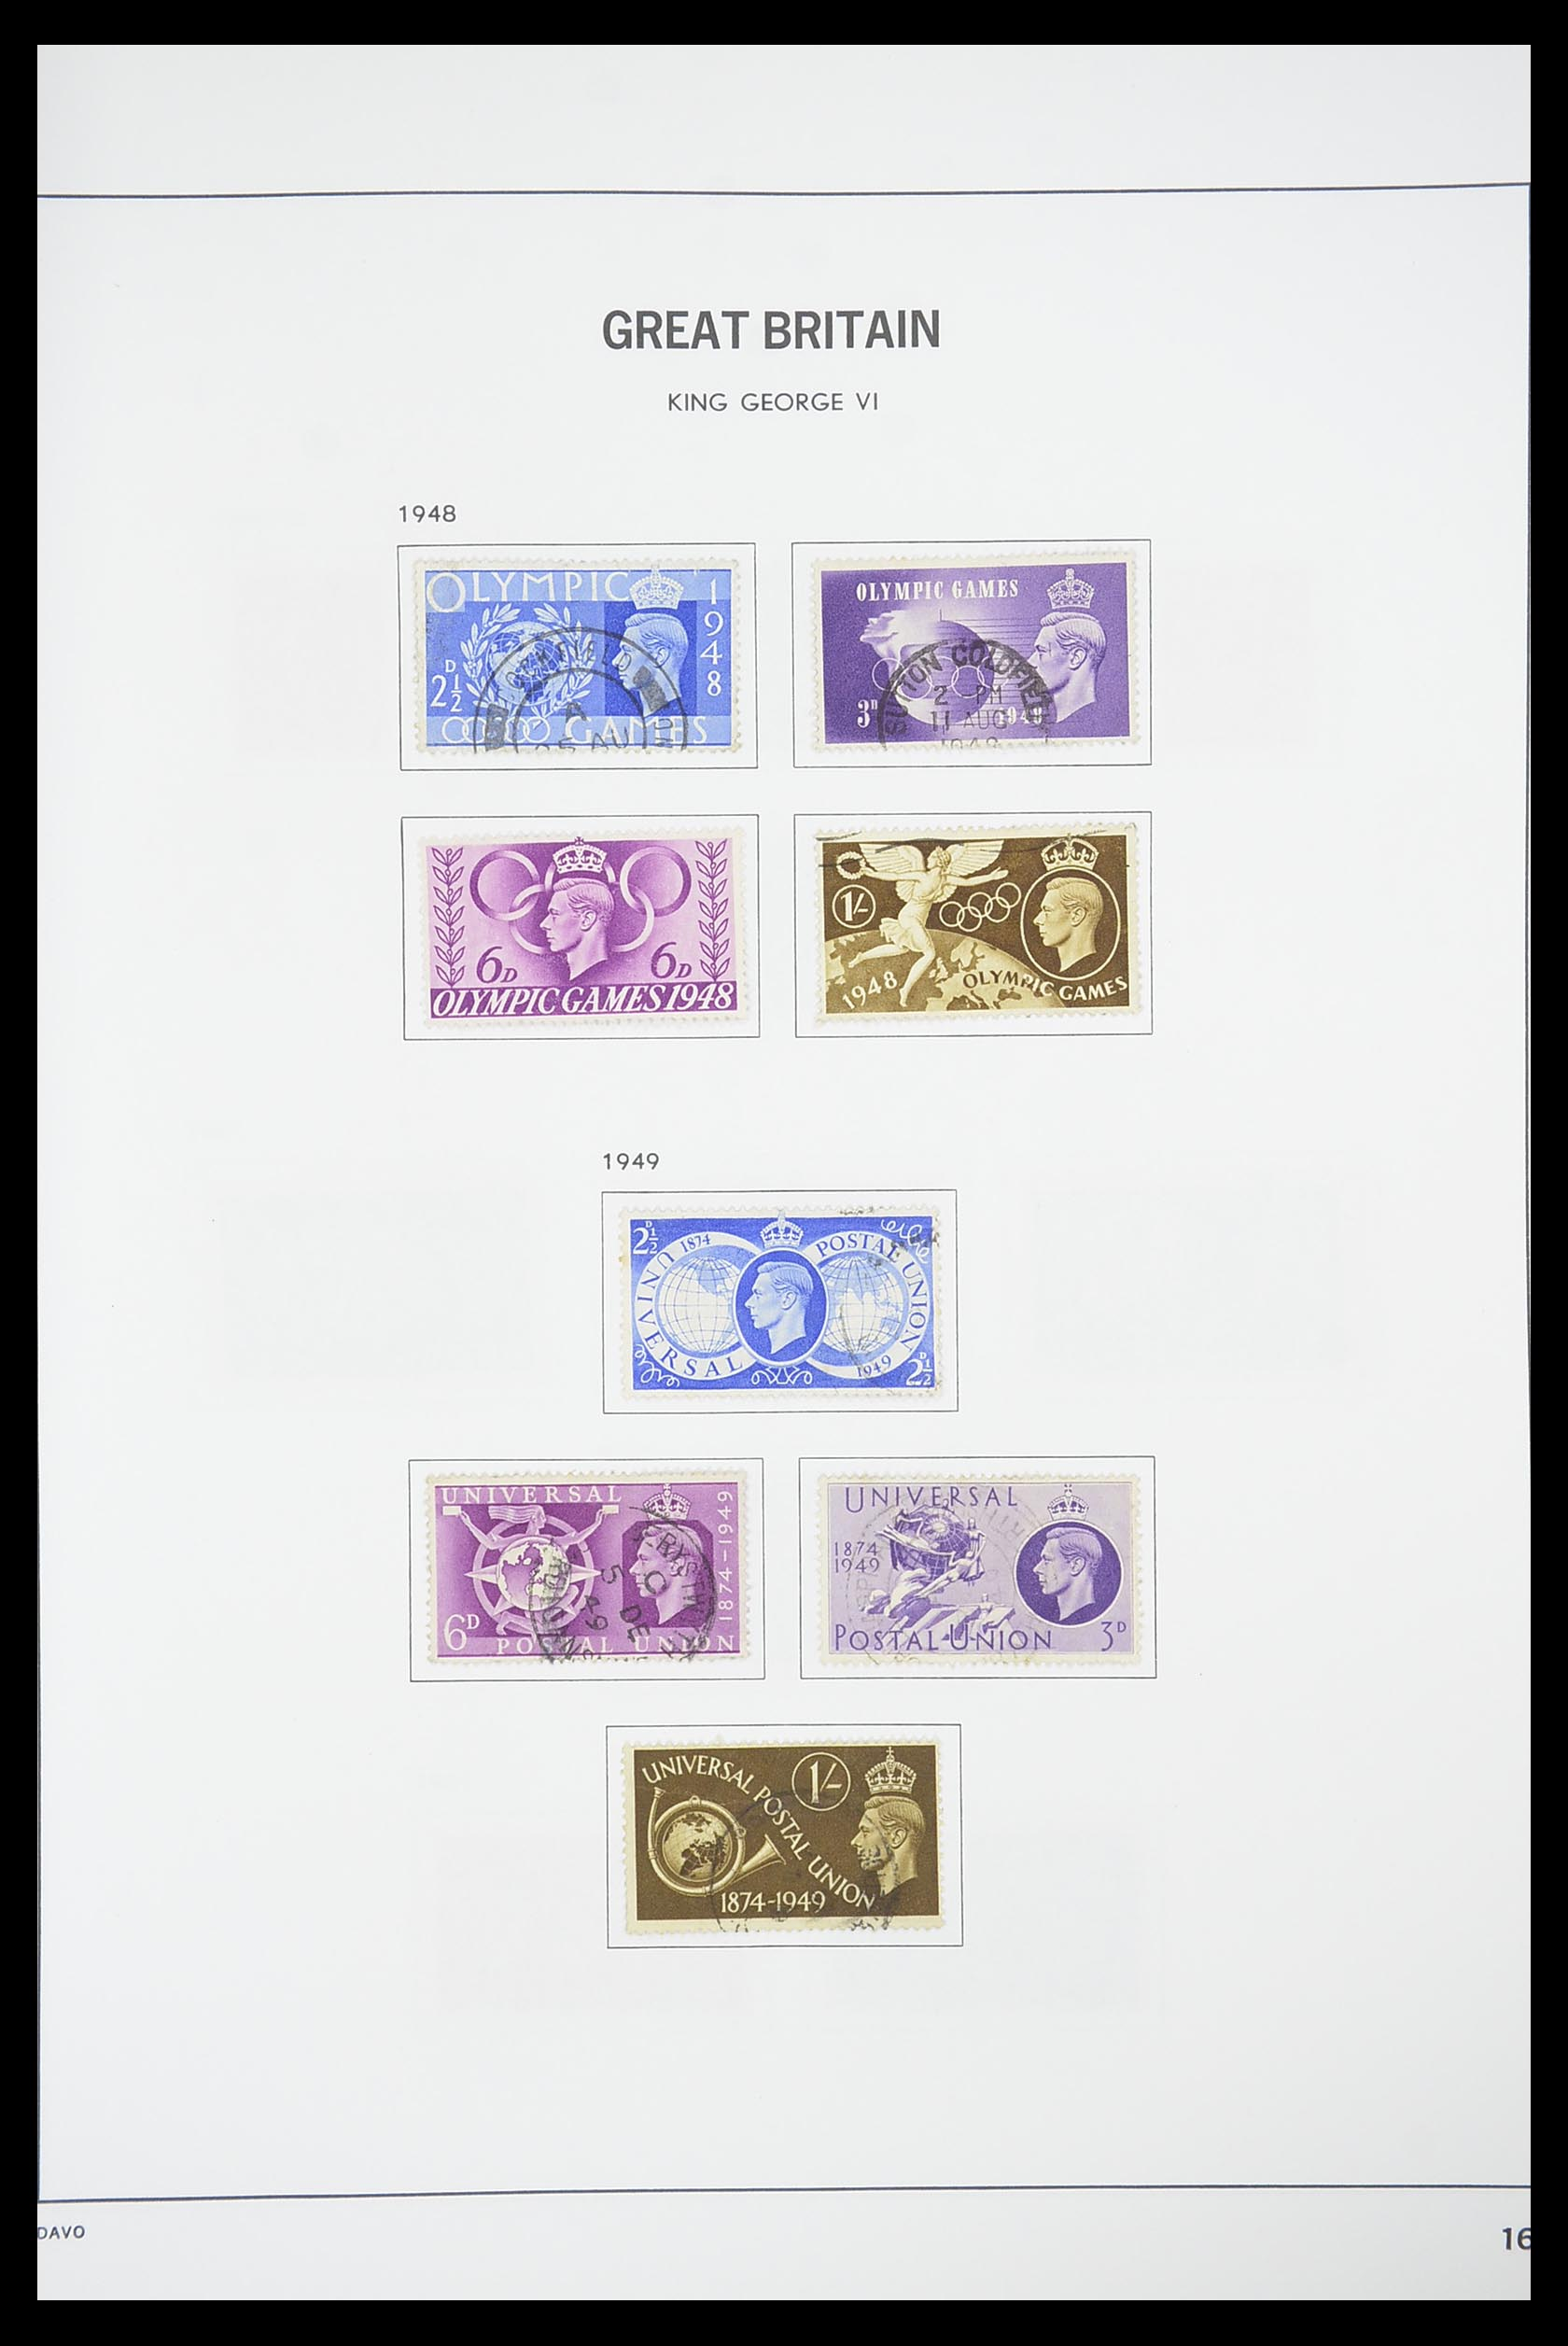 33898 015 - Stamp collection 33898 Great Britain 1840-2006.